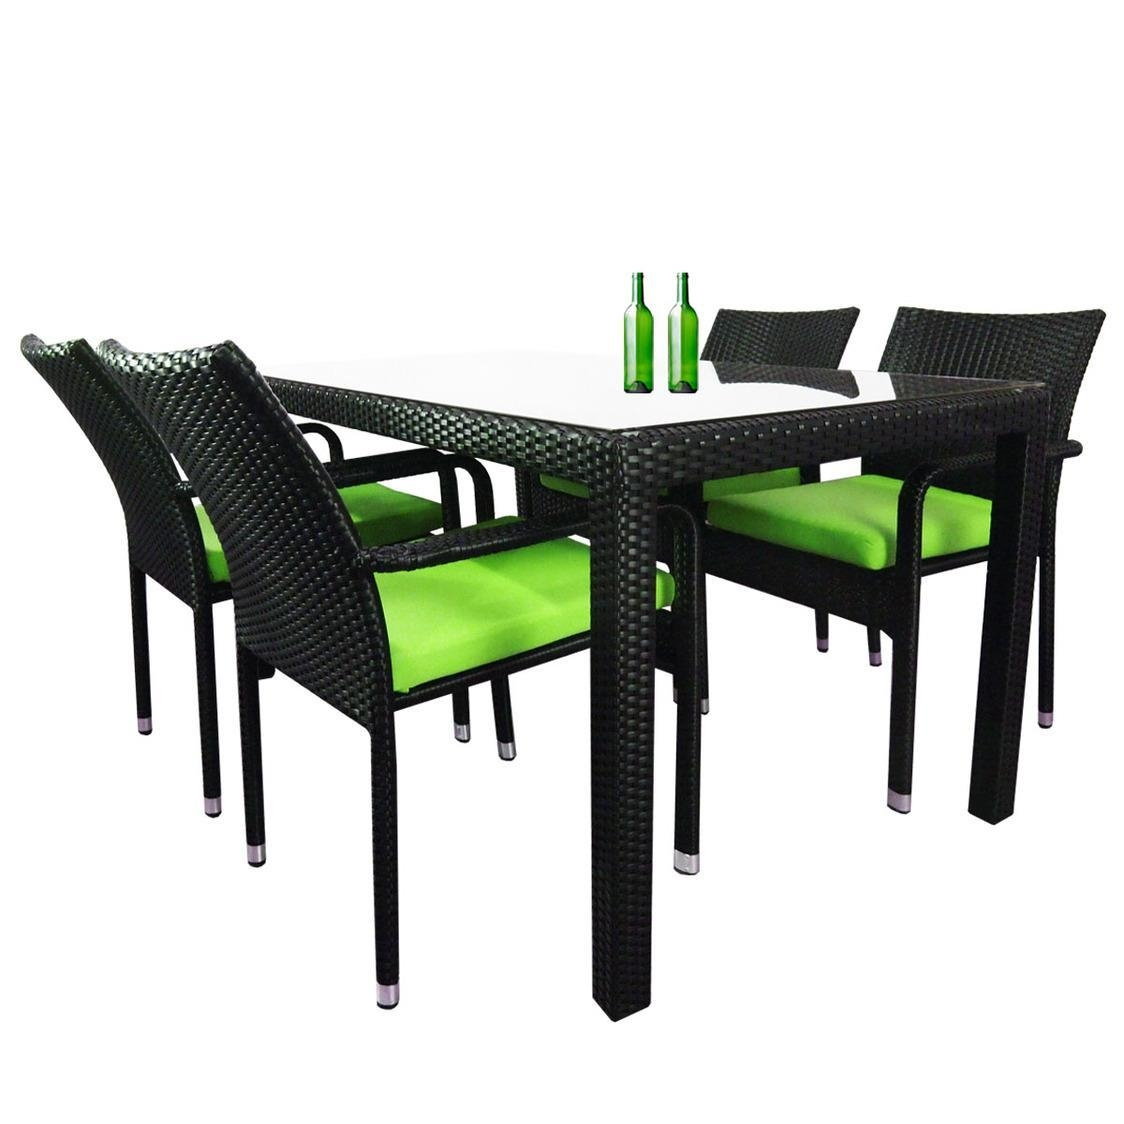 Boulevard 4 Chair Dining Green Cushion